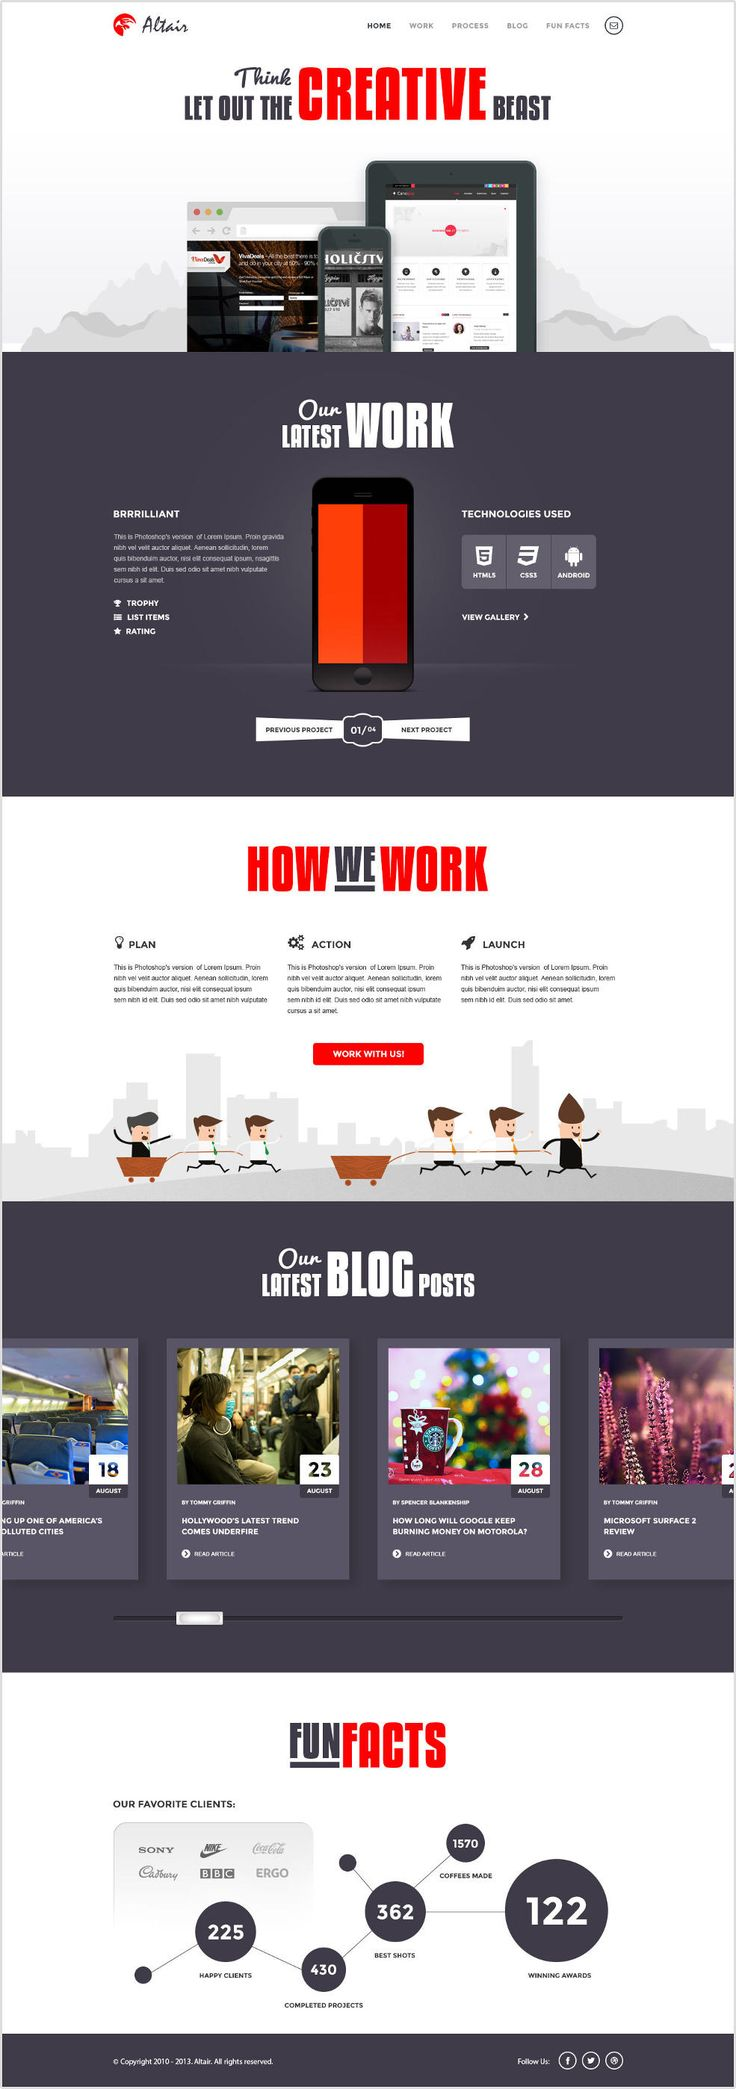 35 free elegant website templates (Free download) All website templates are pre-designed websites, all you need to do is add your own personal content and you're ready to jump start your own website! You can customize the website templates any way you like. Just simply click the image and download. Enjoy! Download Link: http://www.blingstart.com/blog/2014/8/21/30-free-elegant-website-templates-free-download